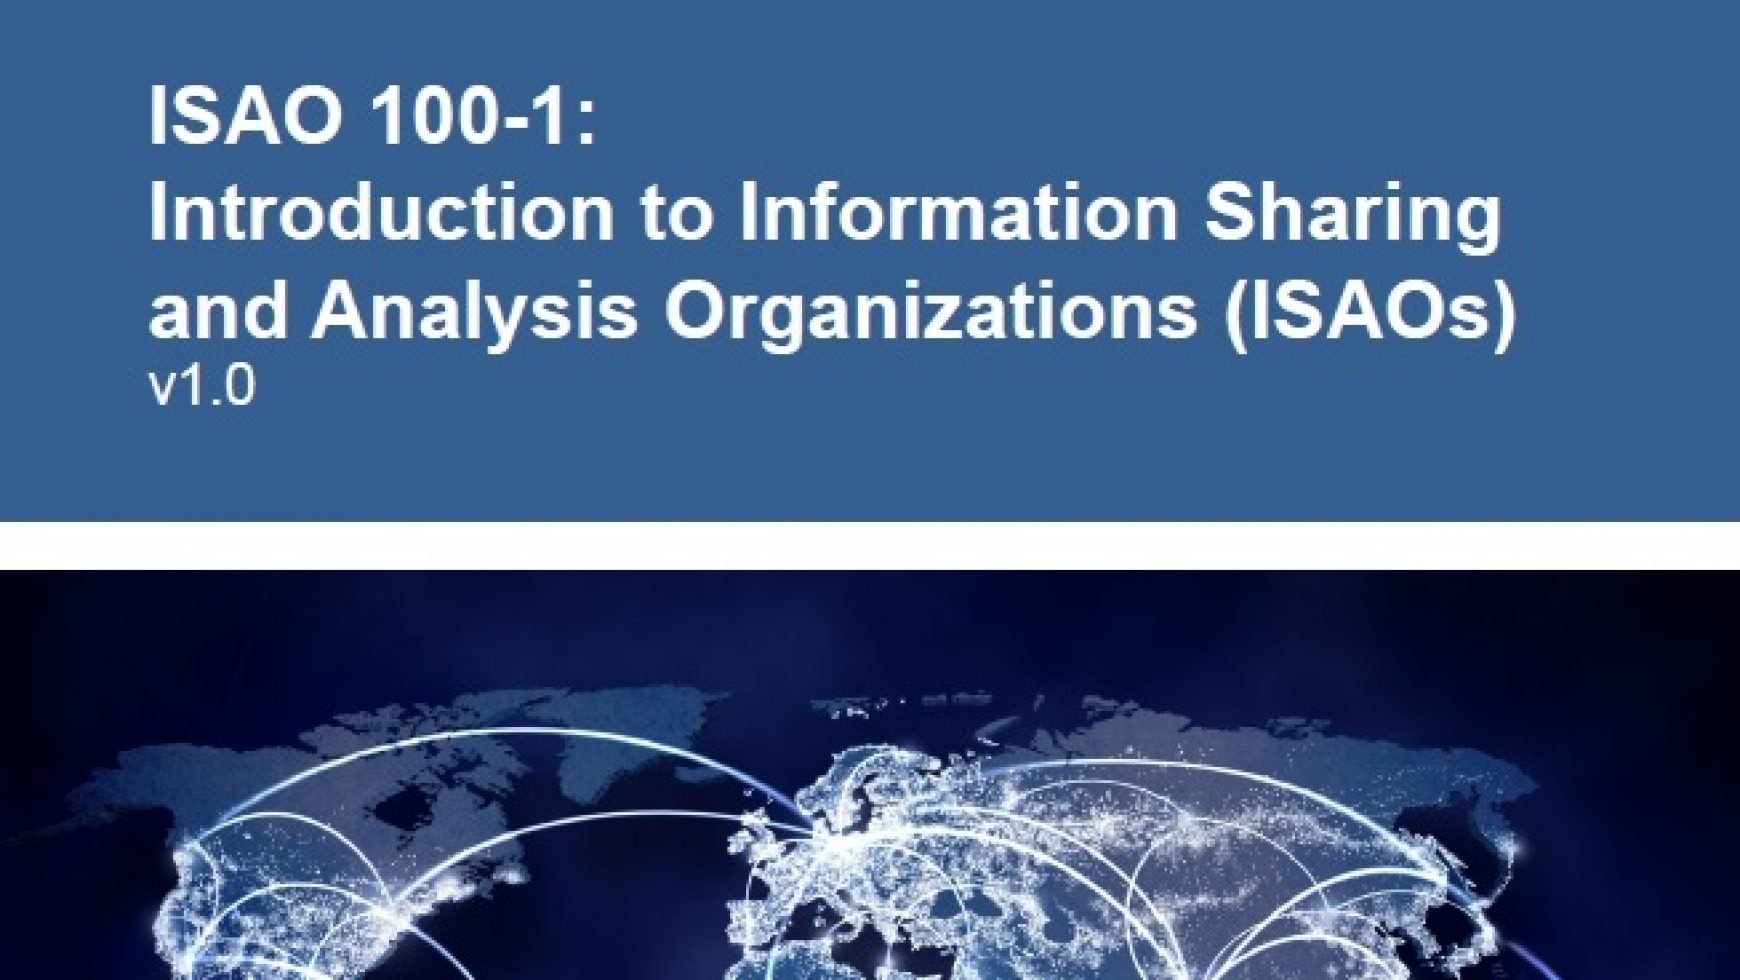 ISAO 100-1: Introduction to Information Sharing and Analysis Organizations (ISAOs) v1.0